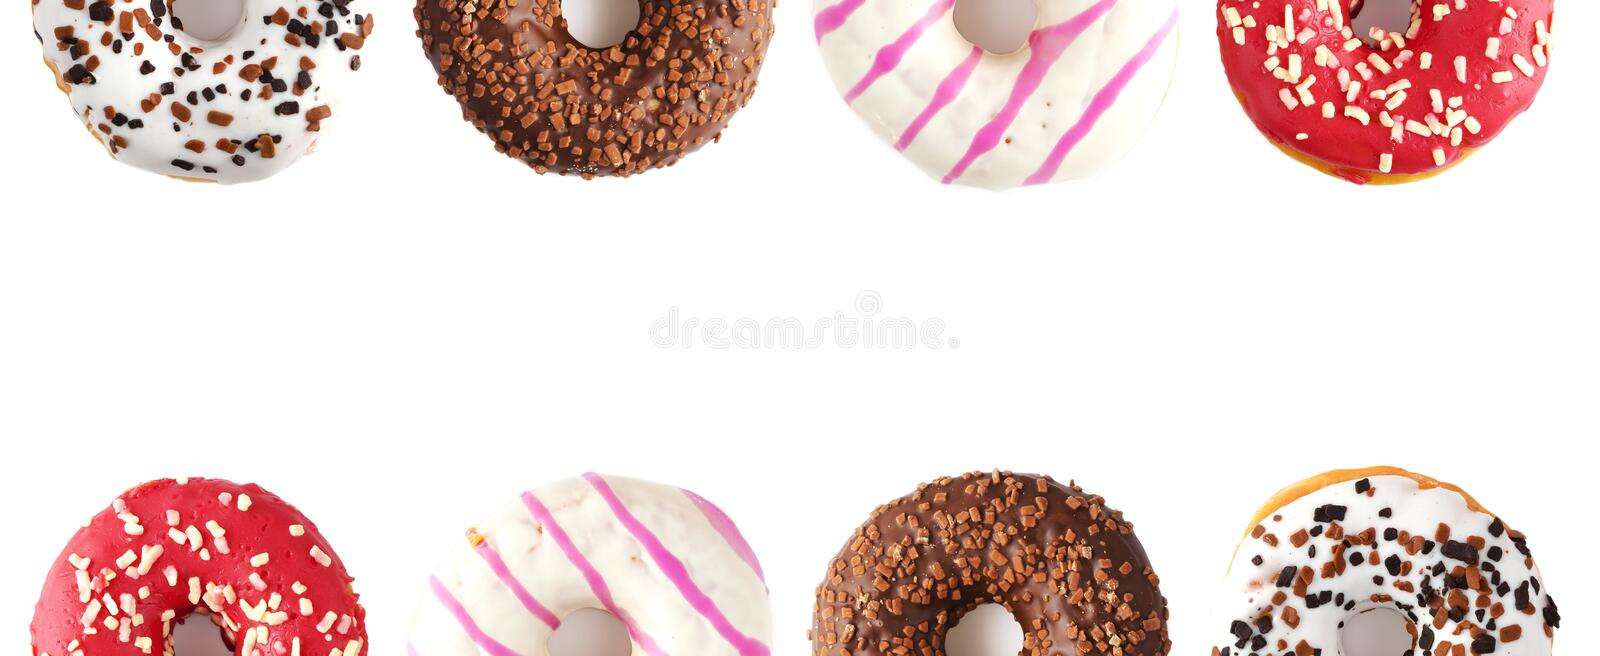 Donuts on a white background. Panorama royalty free stock image